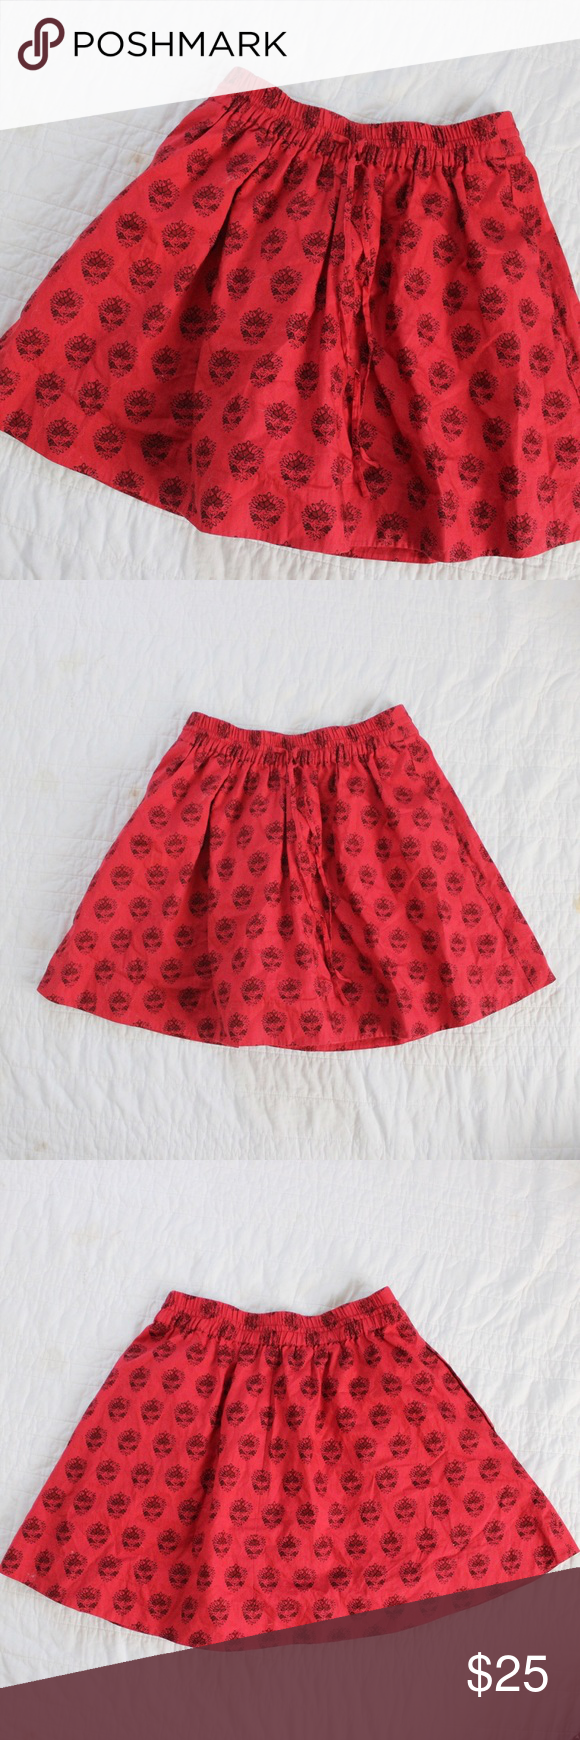 Madewell Printed Elastic Full Mini Skirt Madewell printed mini skirt with elastic hem.  Fits true to size.  Shown on a size 4/6 mannequin.  In gently used condition, no flaws.  Measurements available upon request.  All orders shipped same or next business day! Madewell Skirts Mini